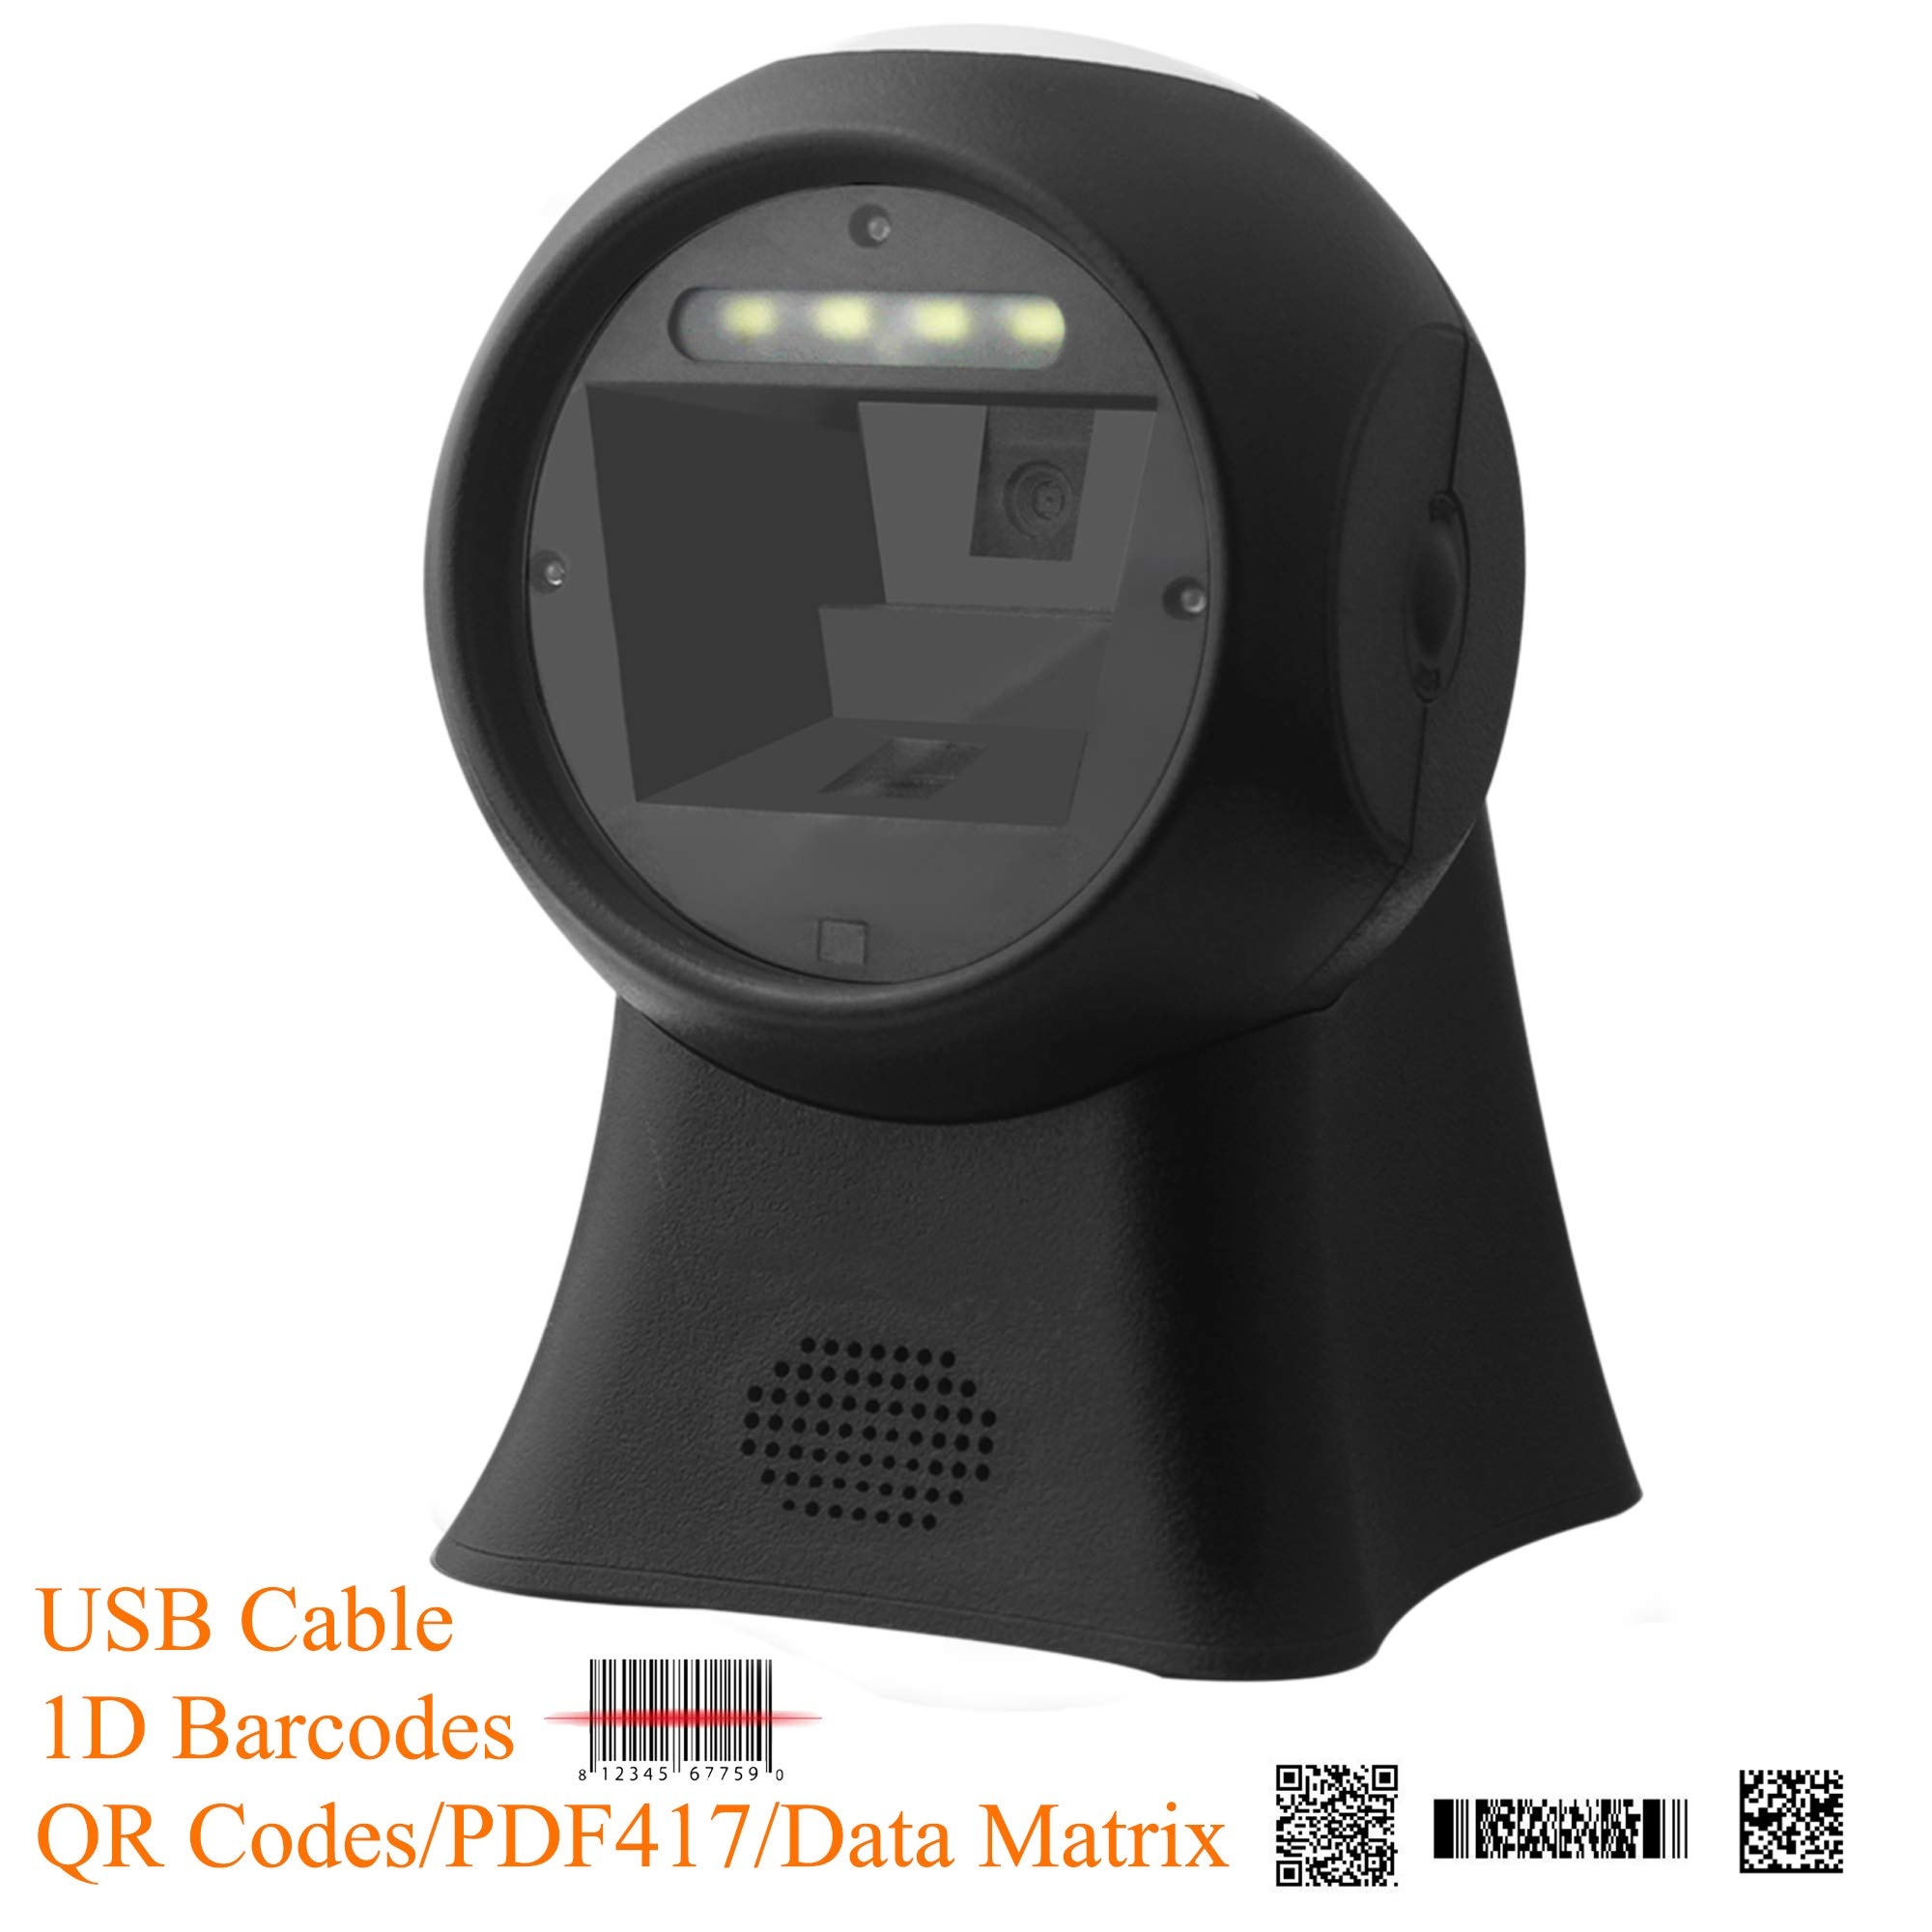 BQ-103P Omnidirectional Barcode Scanner,Automatic 1D Barcode,2D QR Code Capture,USB Cable Directly Used on Supermarket Retails Shop Android/Windows/Mac POS System. by BQ Scan Series